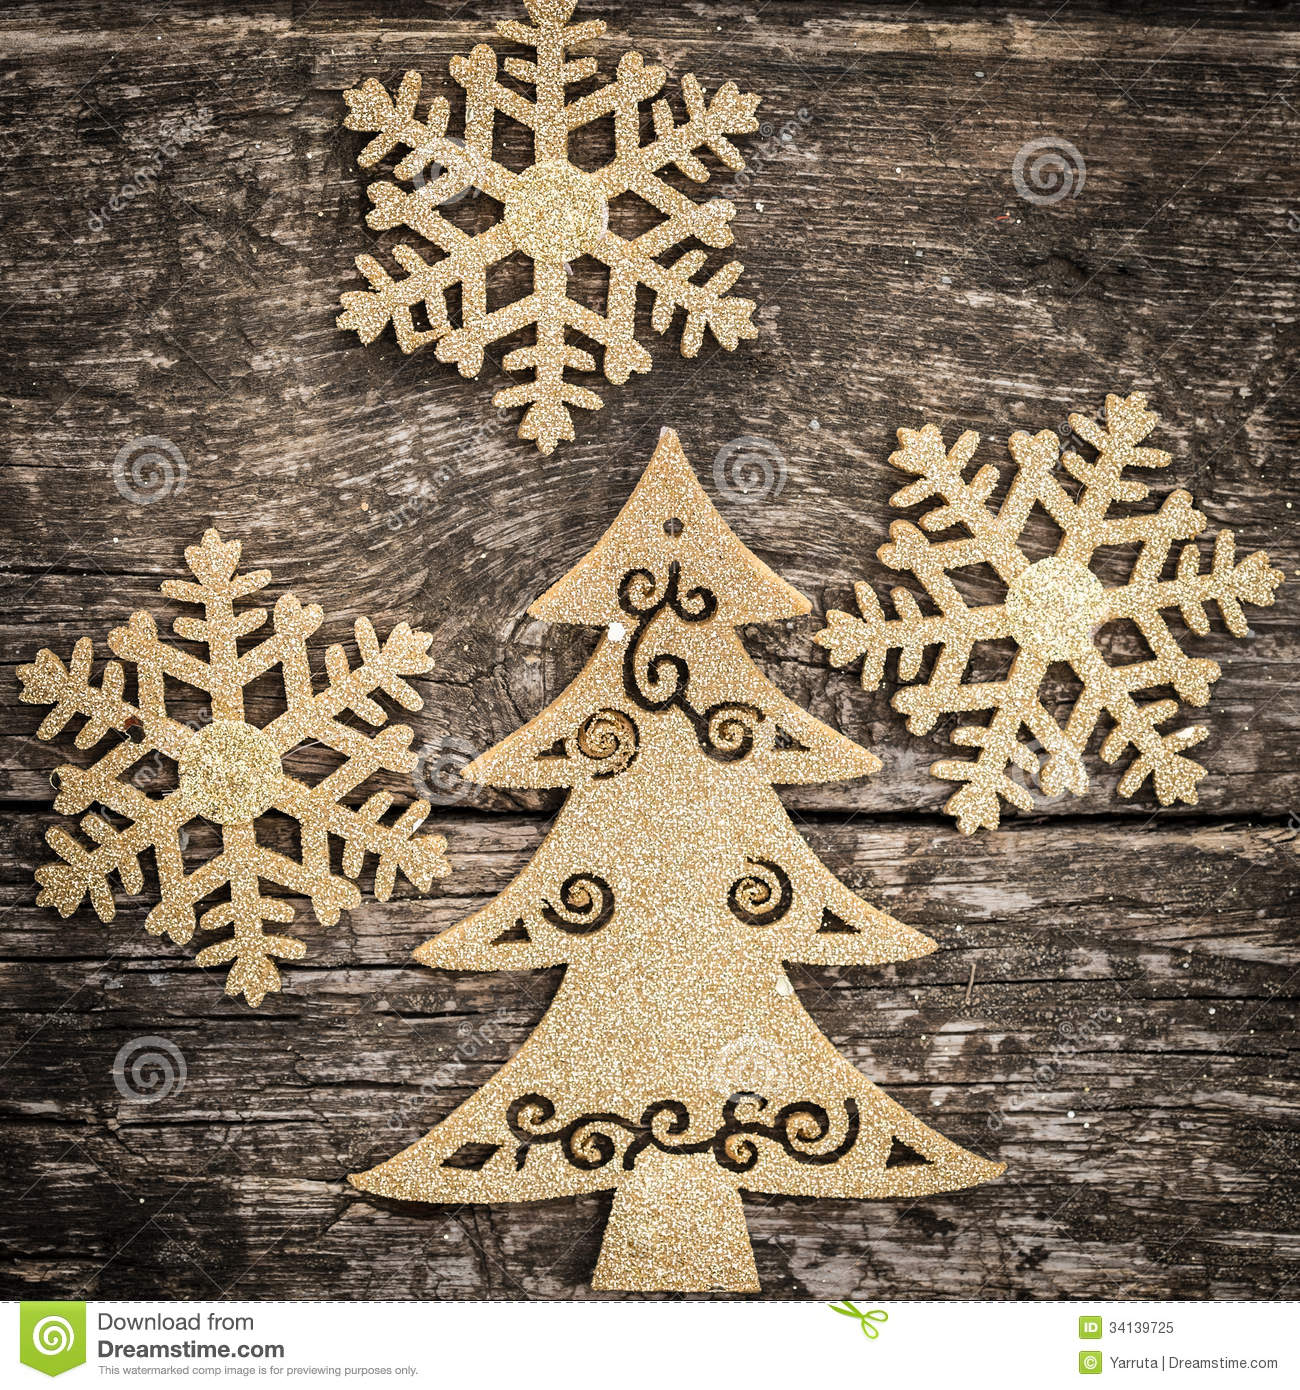 Christmas tree decorations gold - Gold Christmas Tree Decorations On Grunge Wood Royalty Free Stock Photo